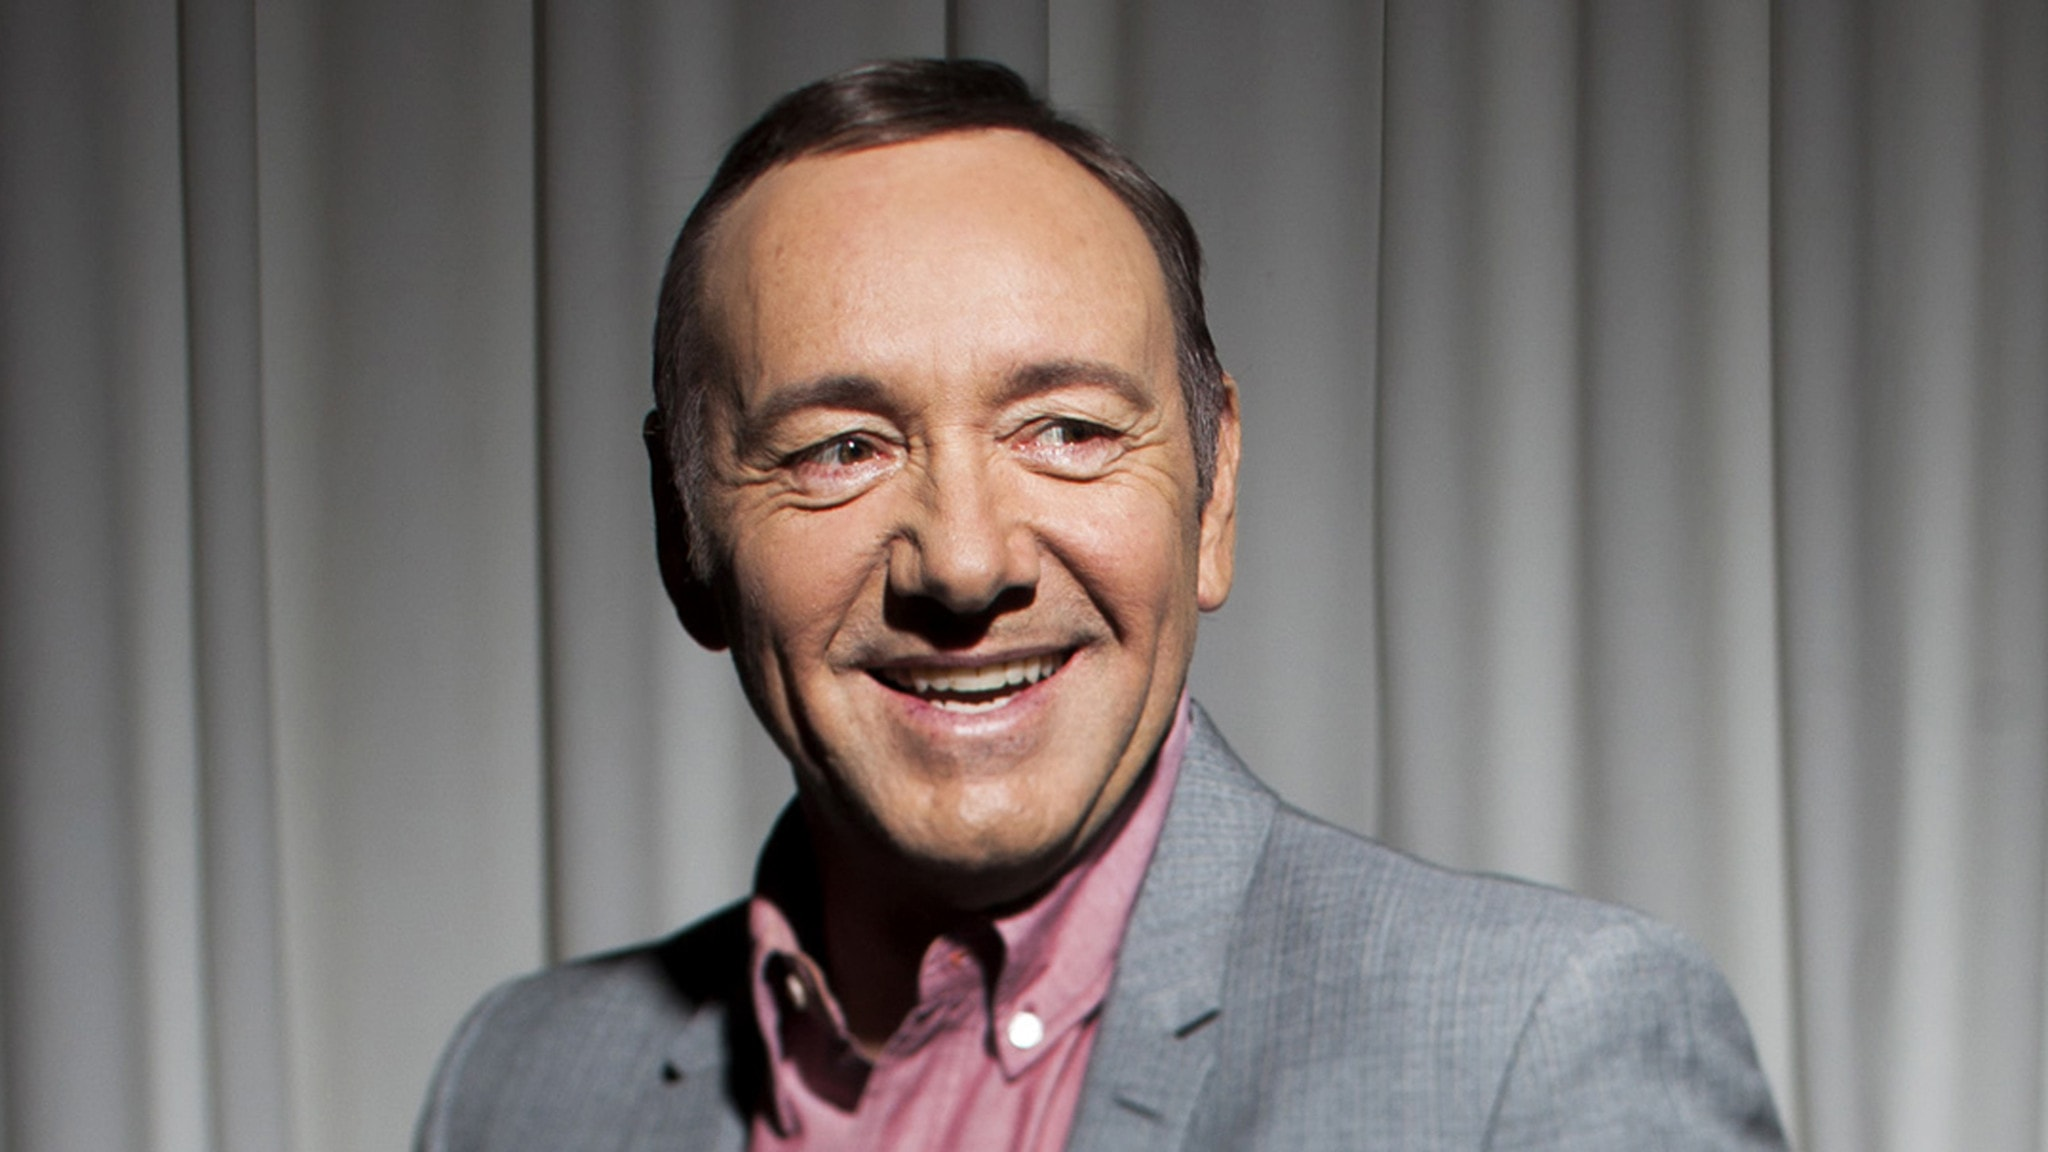 Kevin Spacey Backgrounds